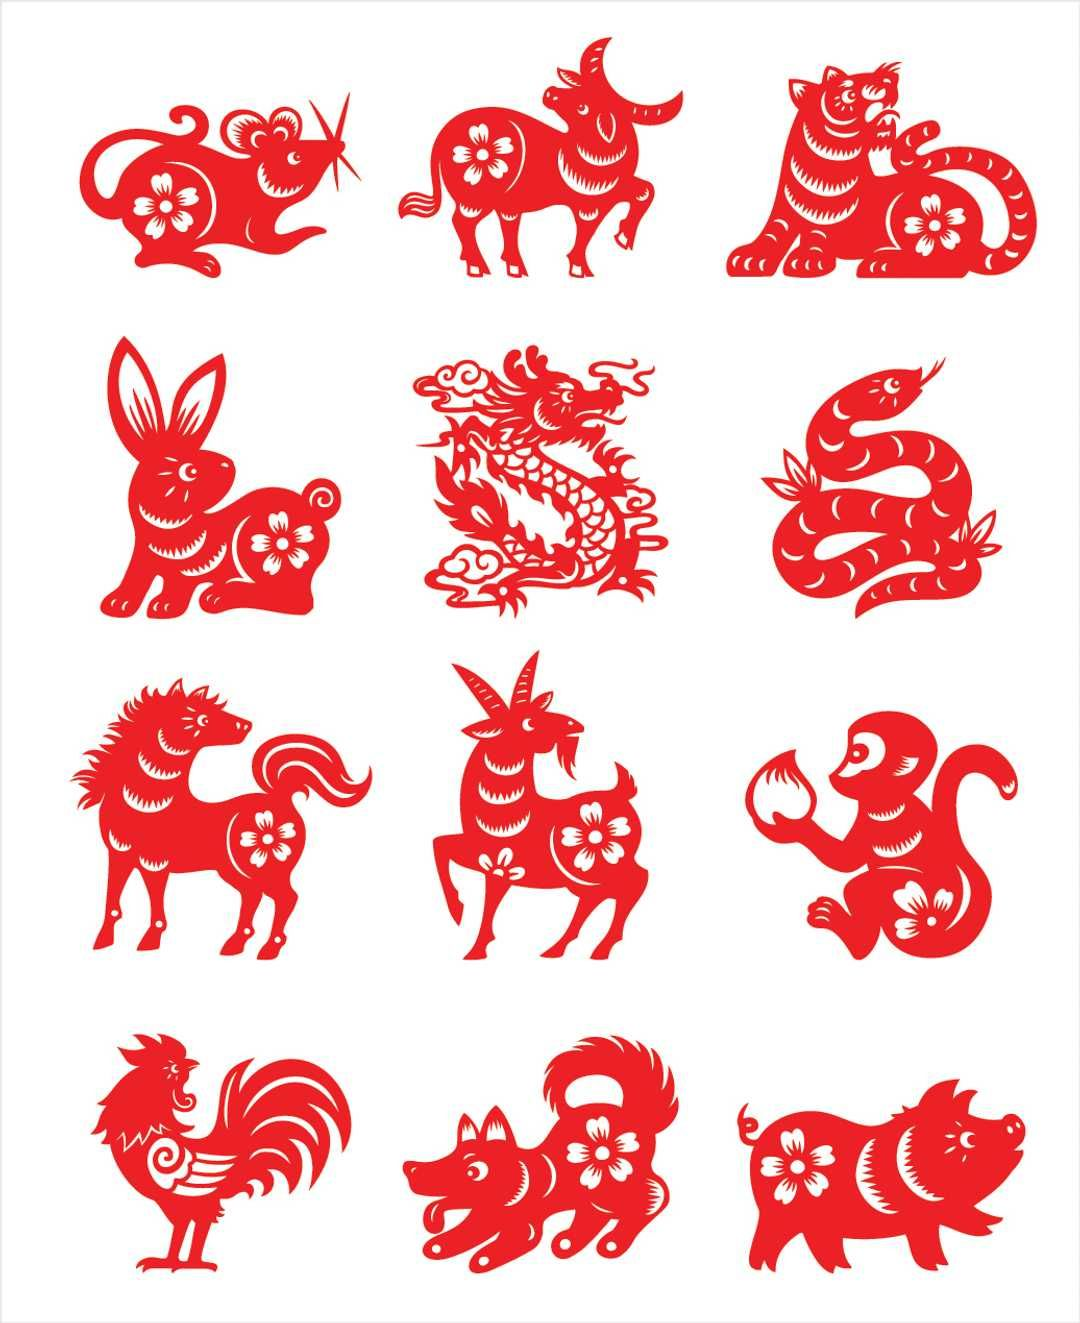 Chinese New Year is Feb. 5: Here's why it's significant ...